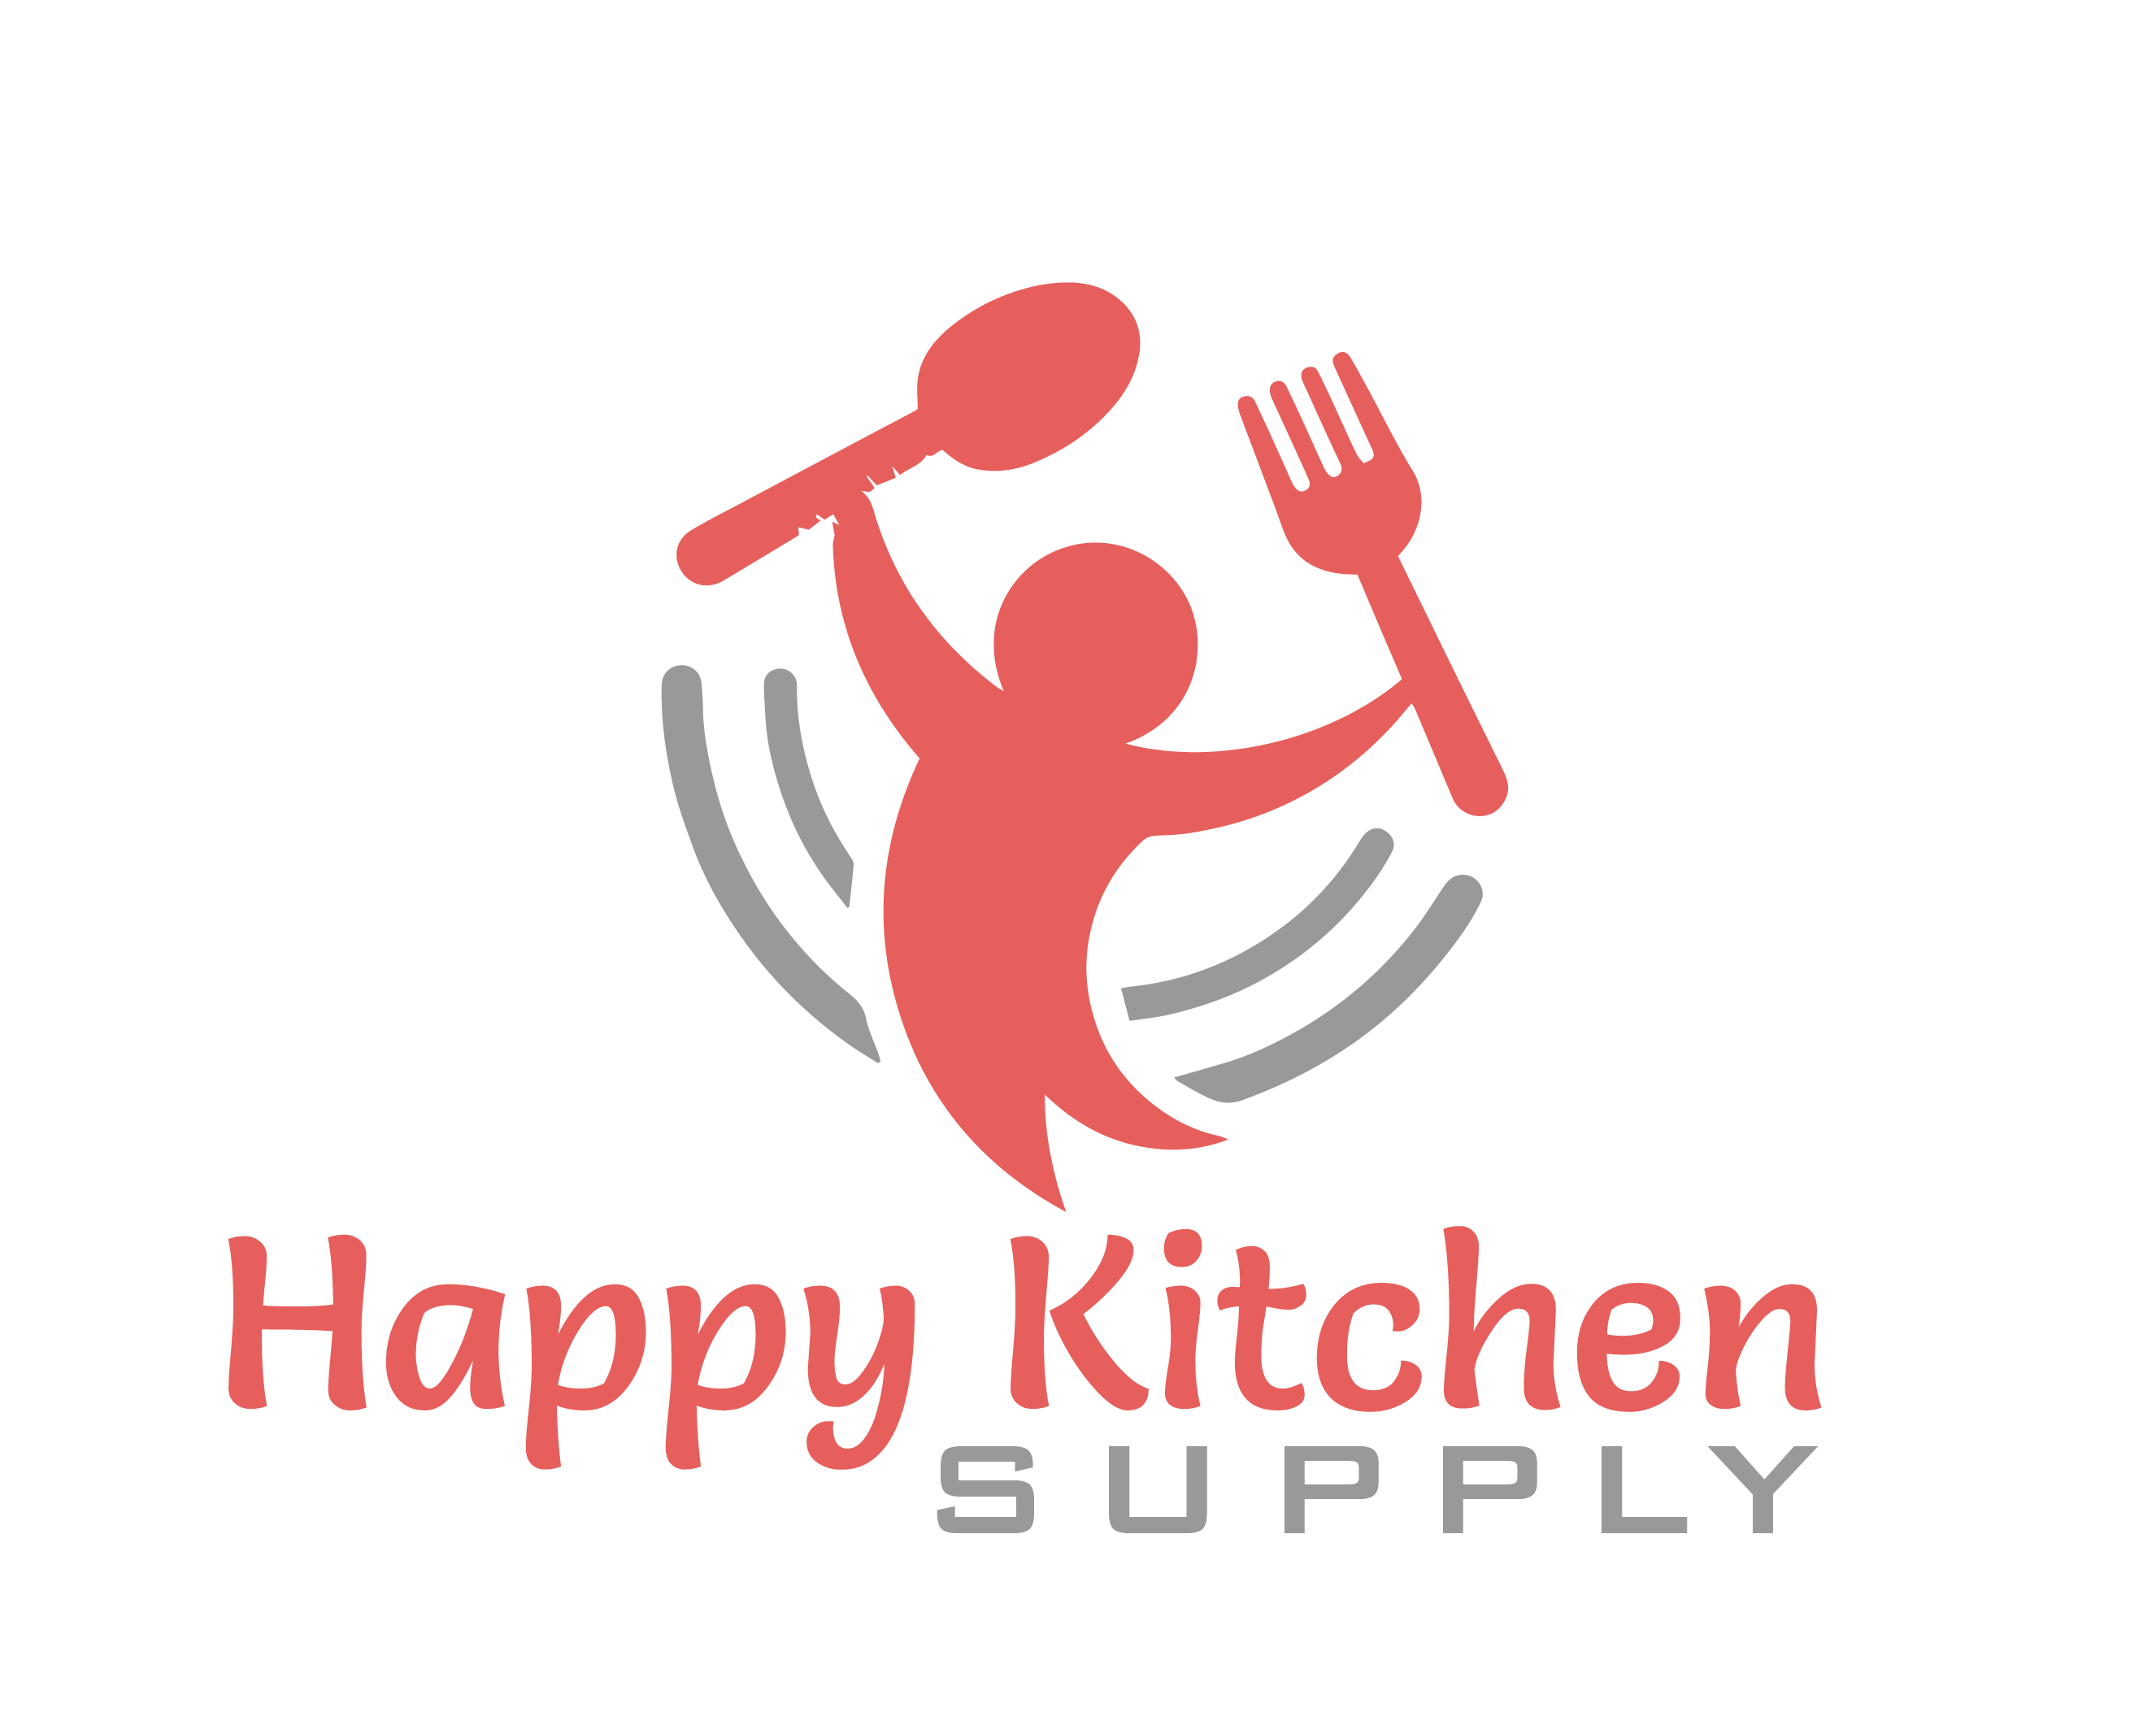 Hardboiled Egg Cooker – Happy Kitchen Supply